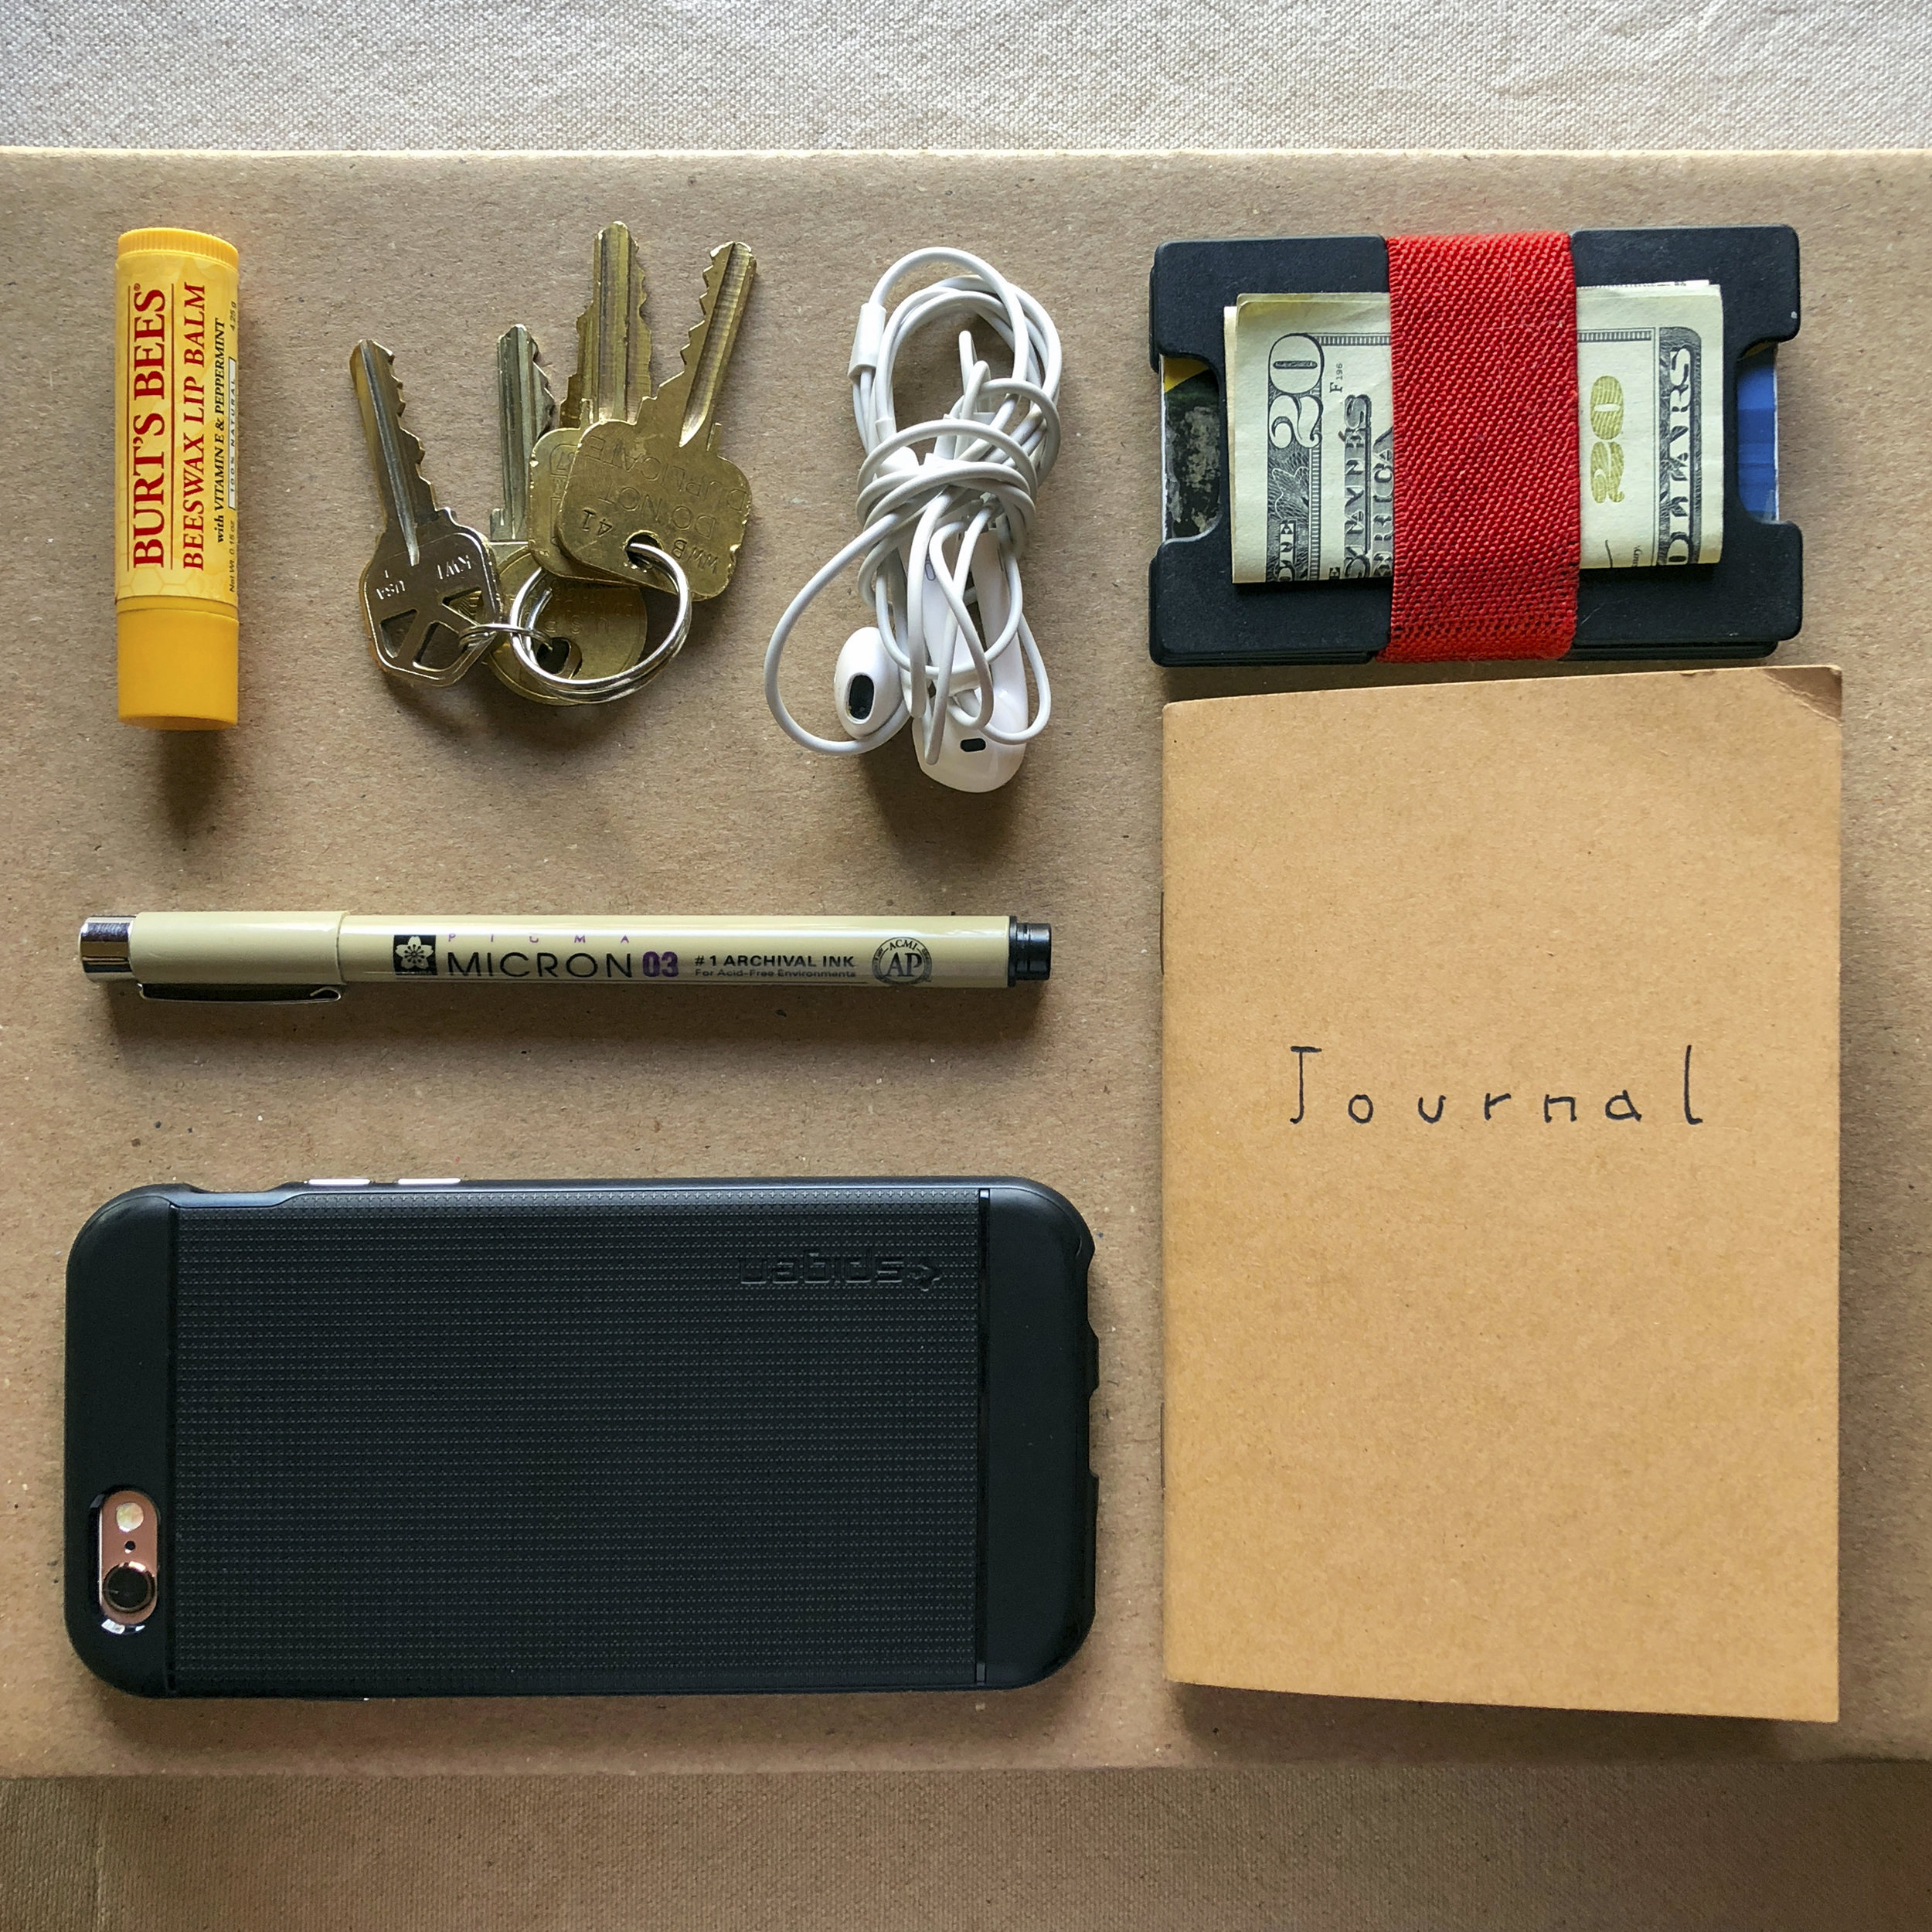 Functionality is very important to us, which is why everything we design has roomy pockets to fit all the essentials. Like phone, keys, wallet, compact and lipstick, or even a journal and a pen.